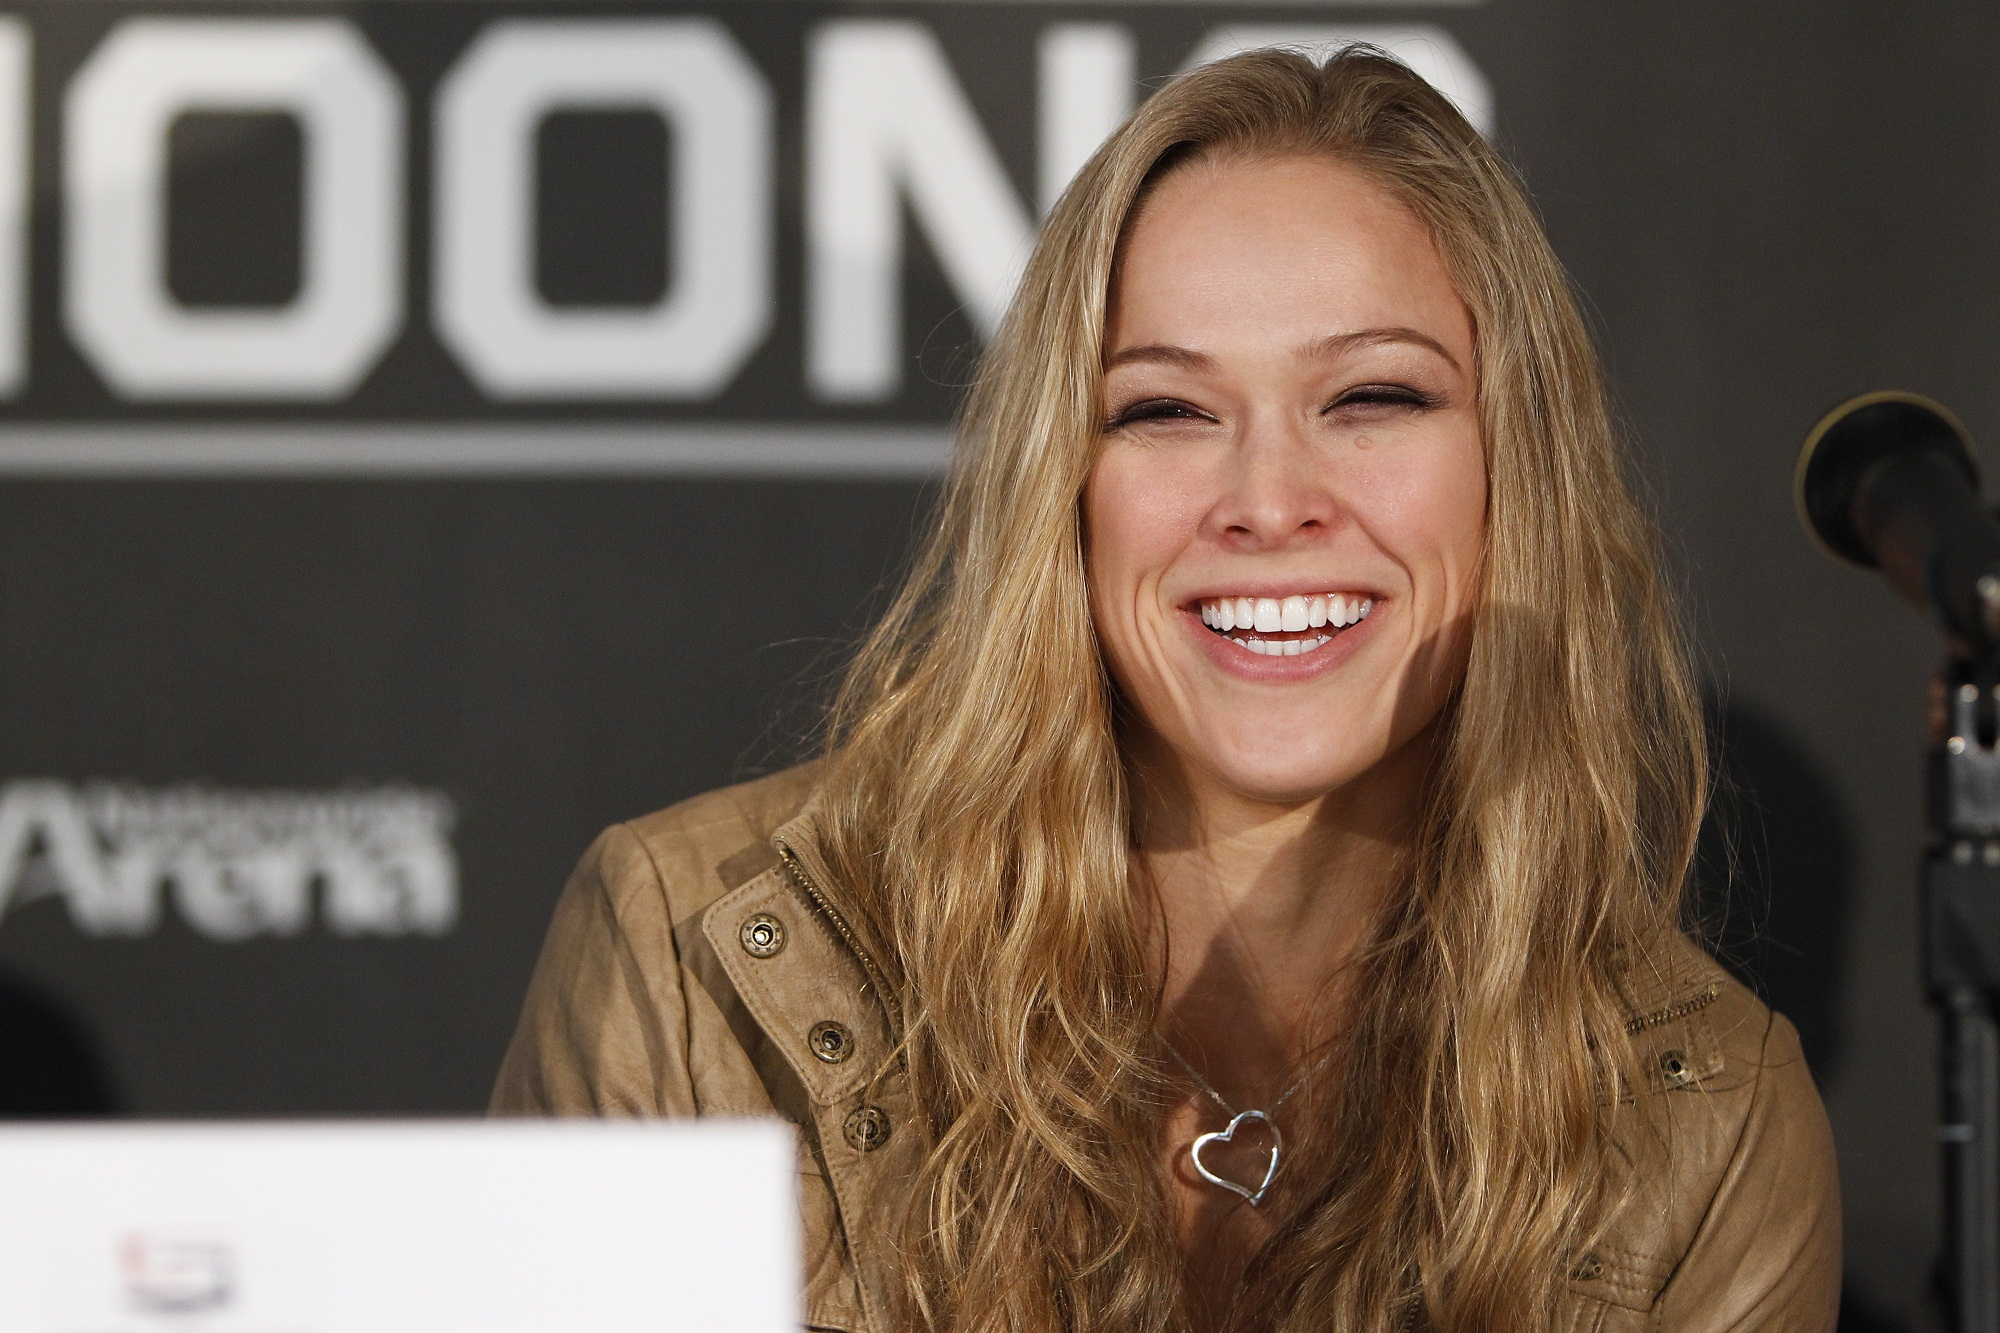 Strikeforce bantamweight champion Ronda Rousey